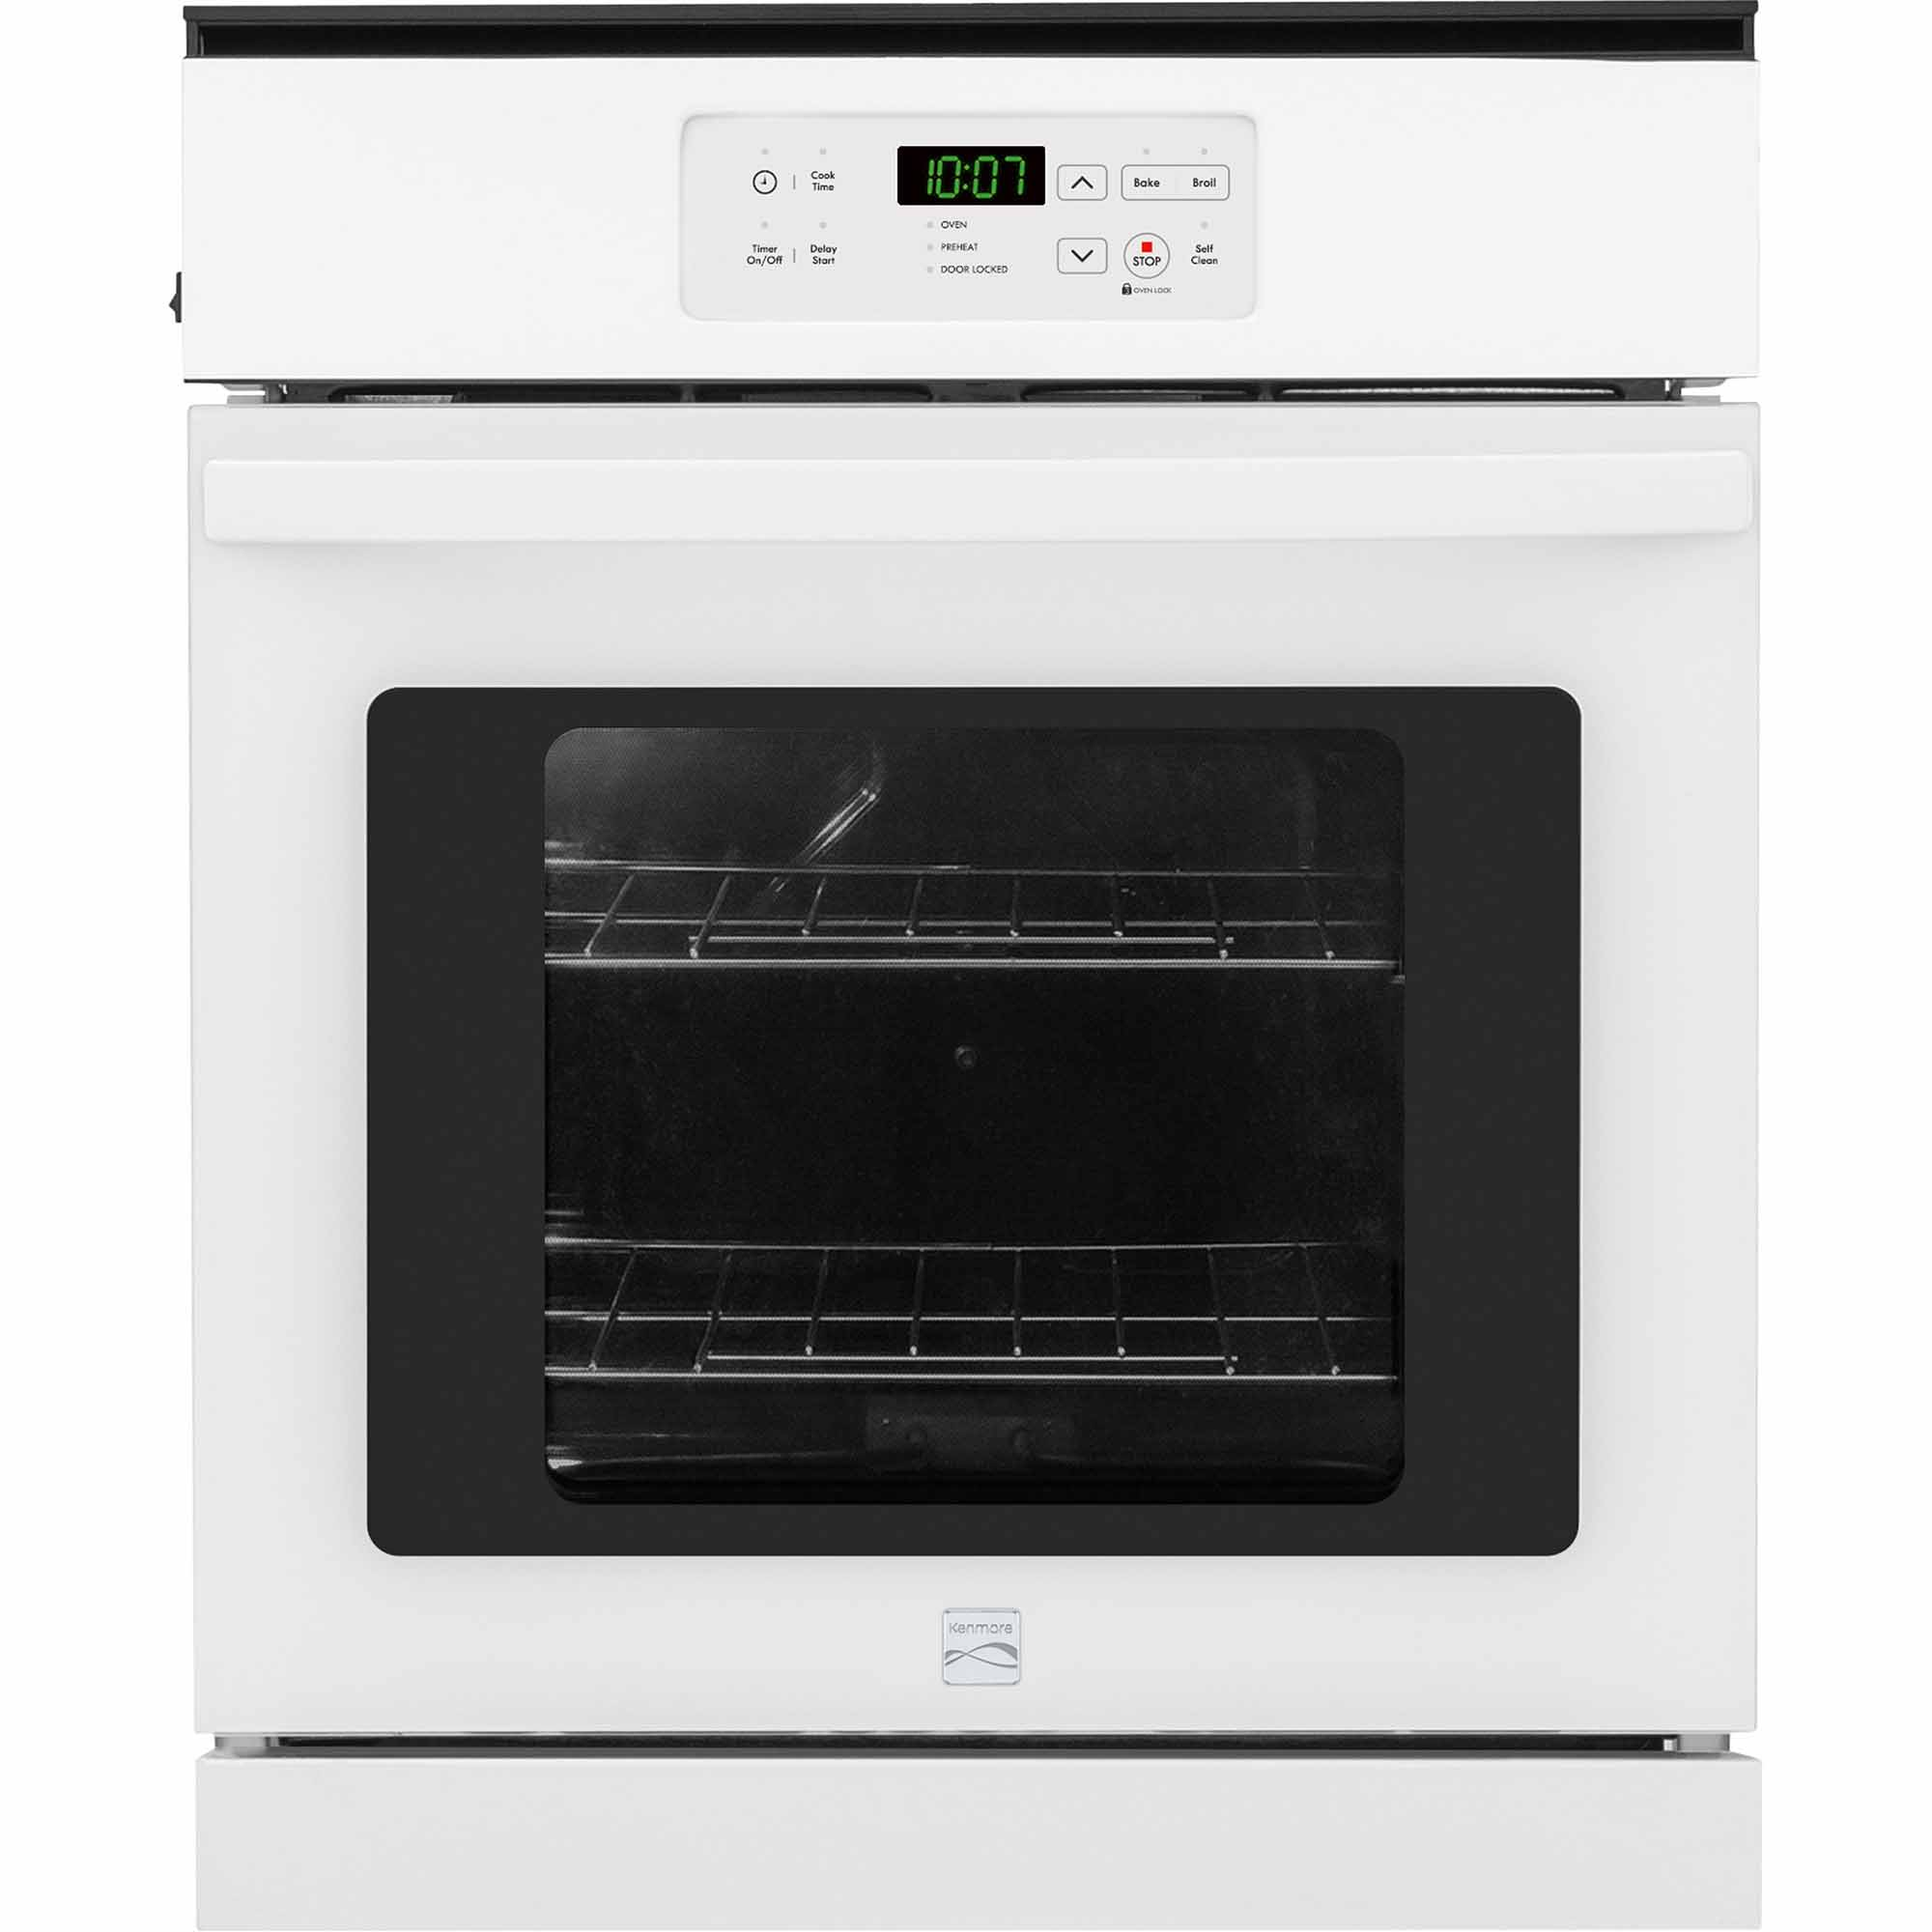 Kenmore 40282 24 Self-Cleaning Electric Wall Oven - White